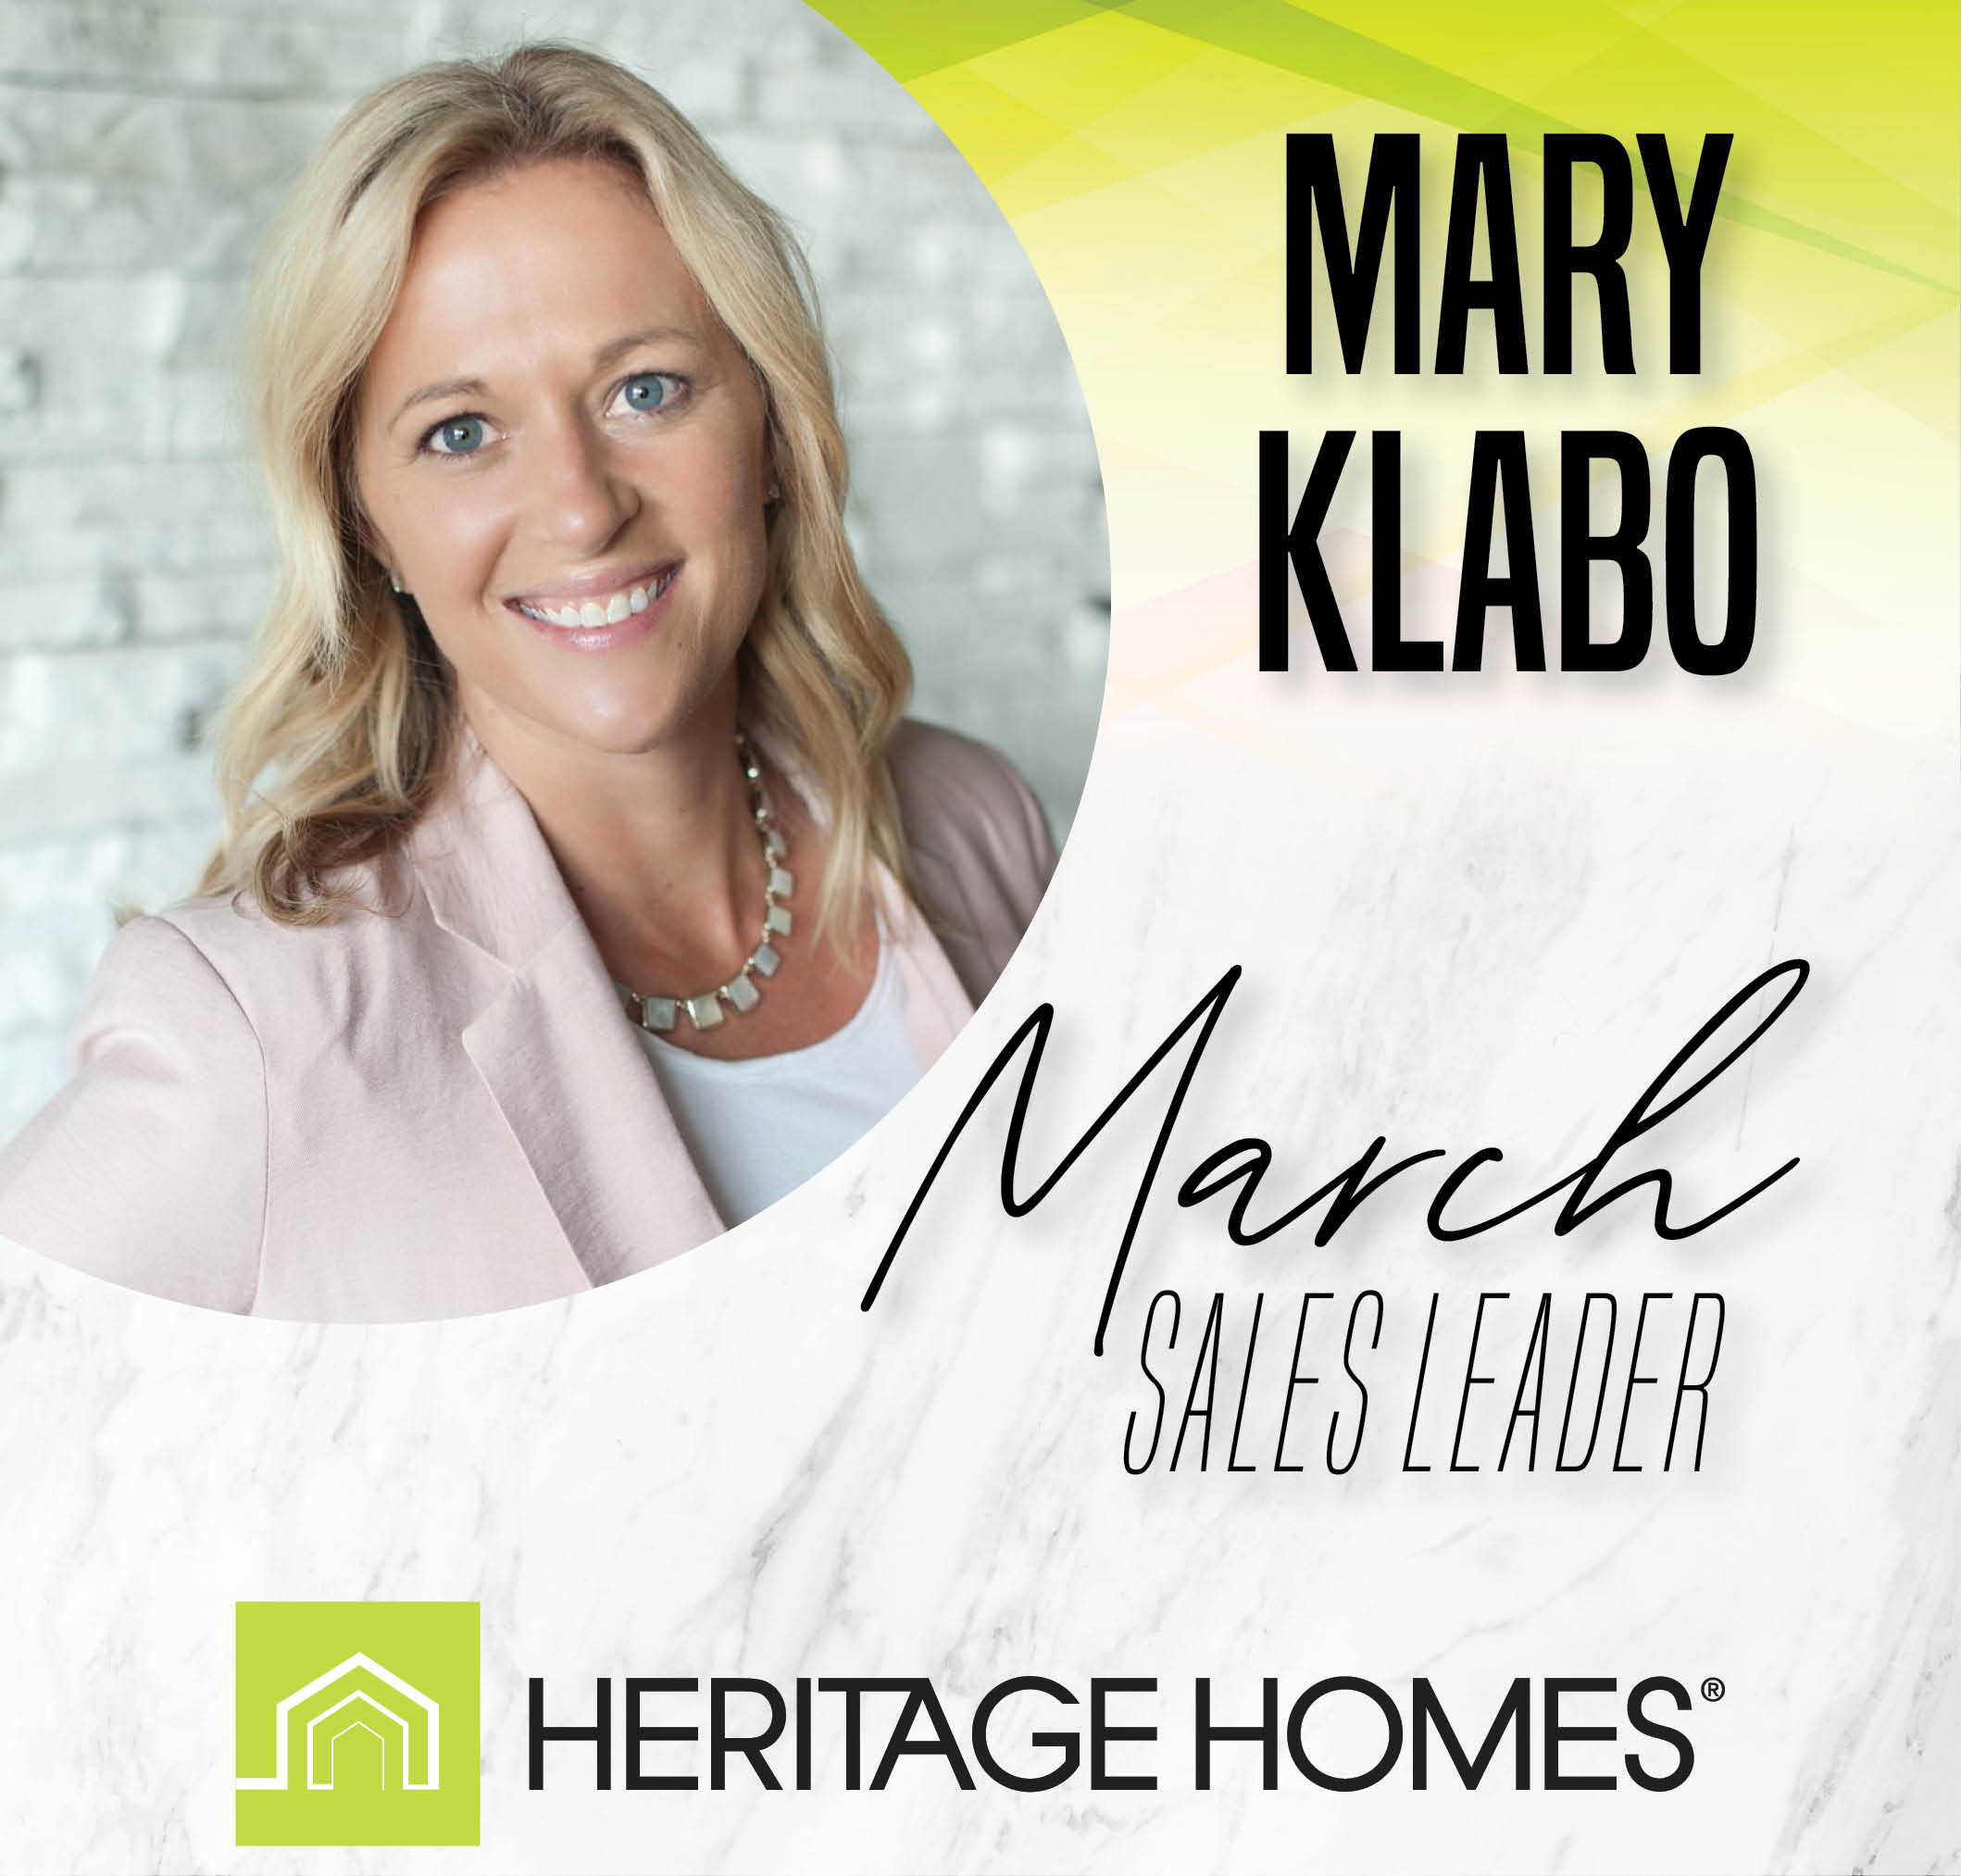 March Sales Leader – Mary Klabo